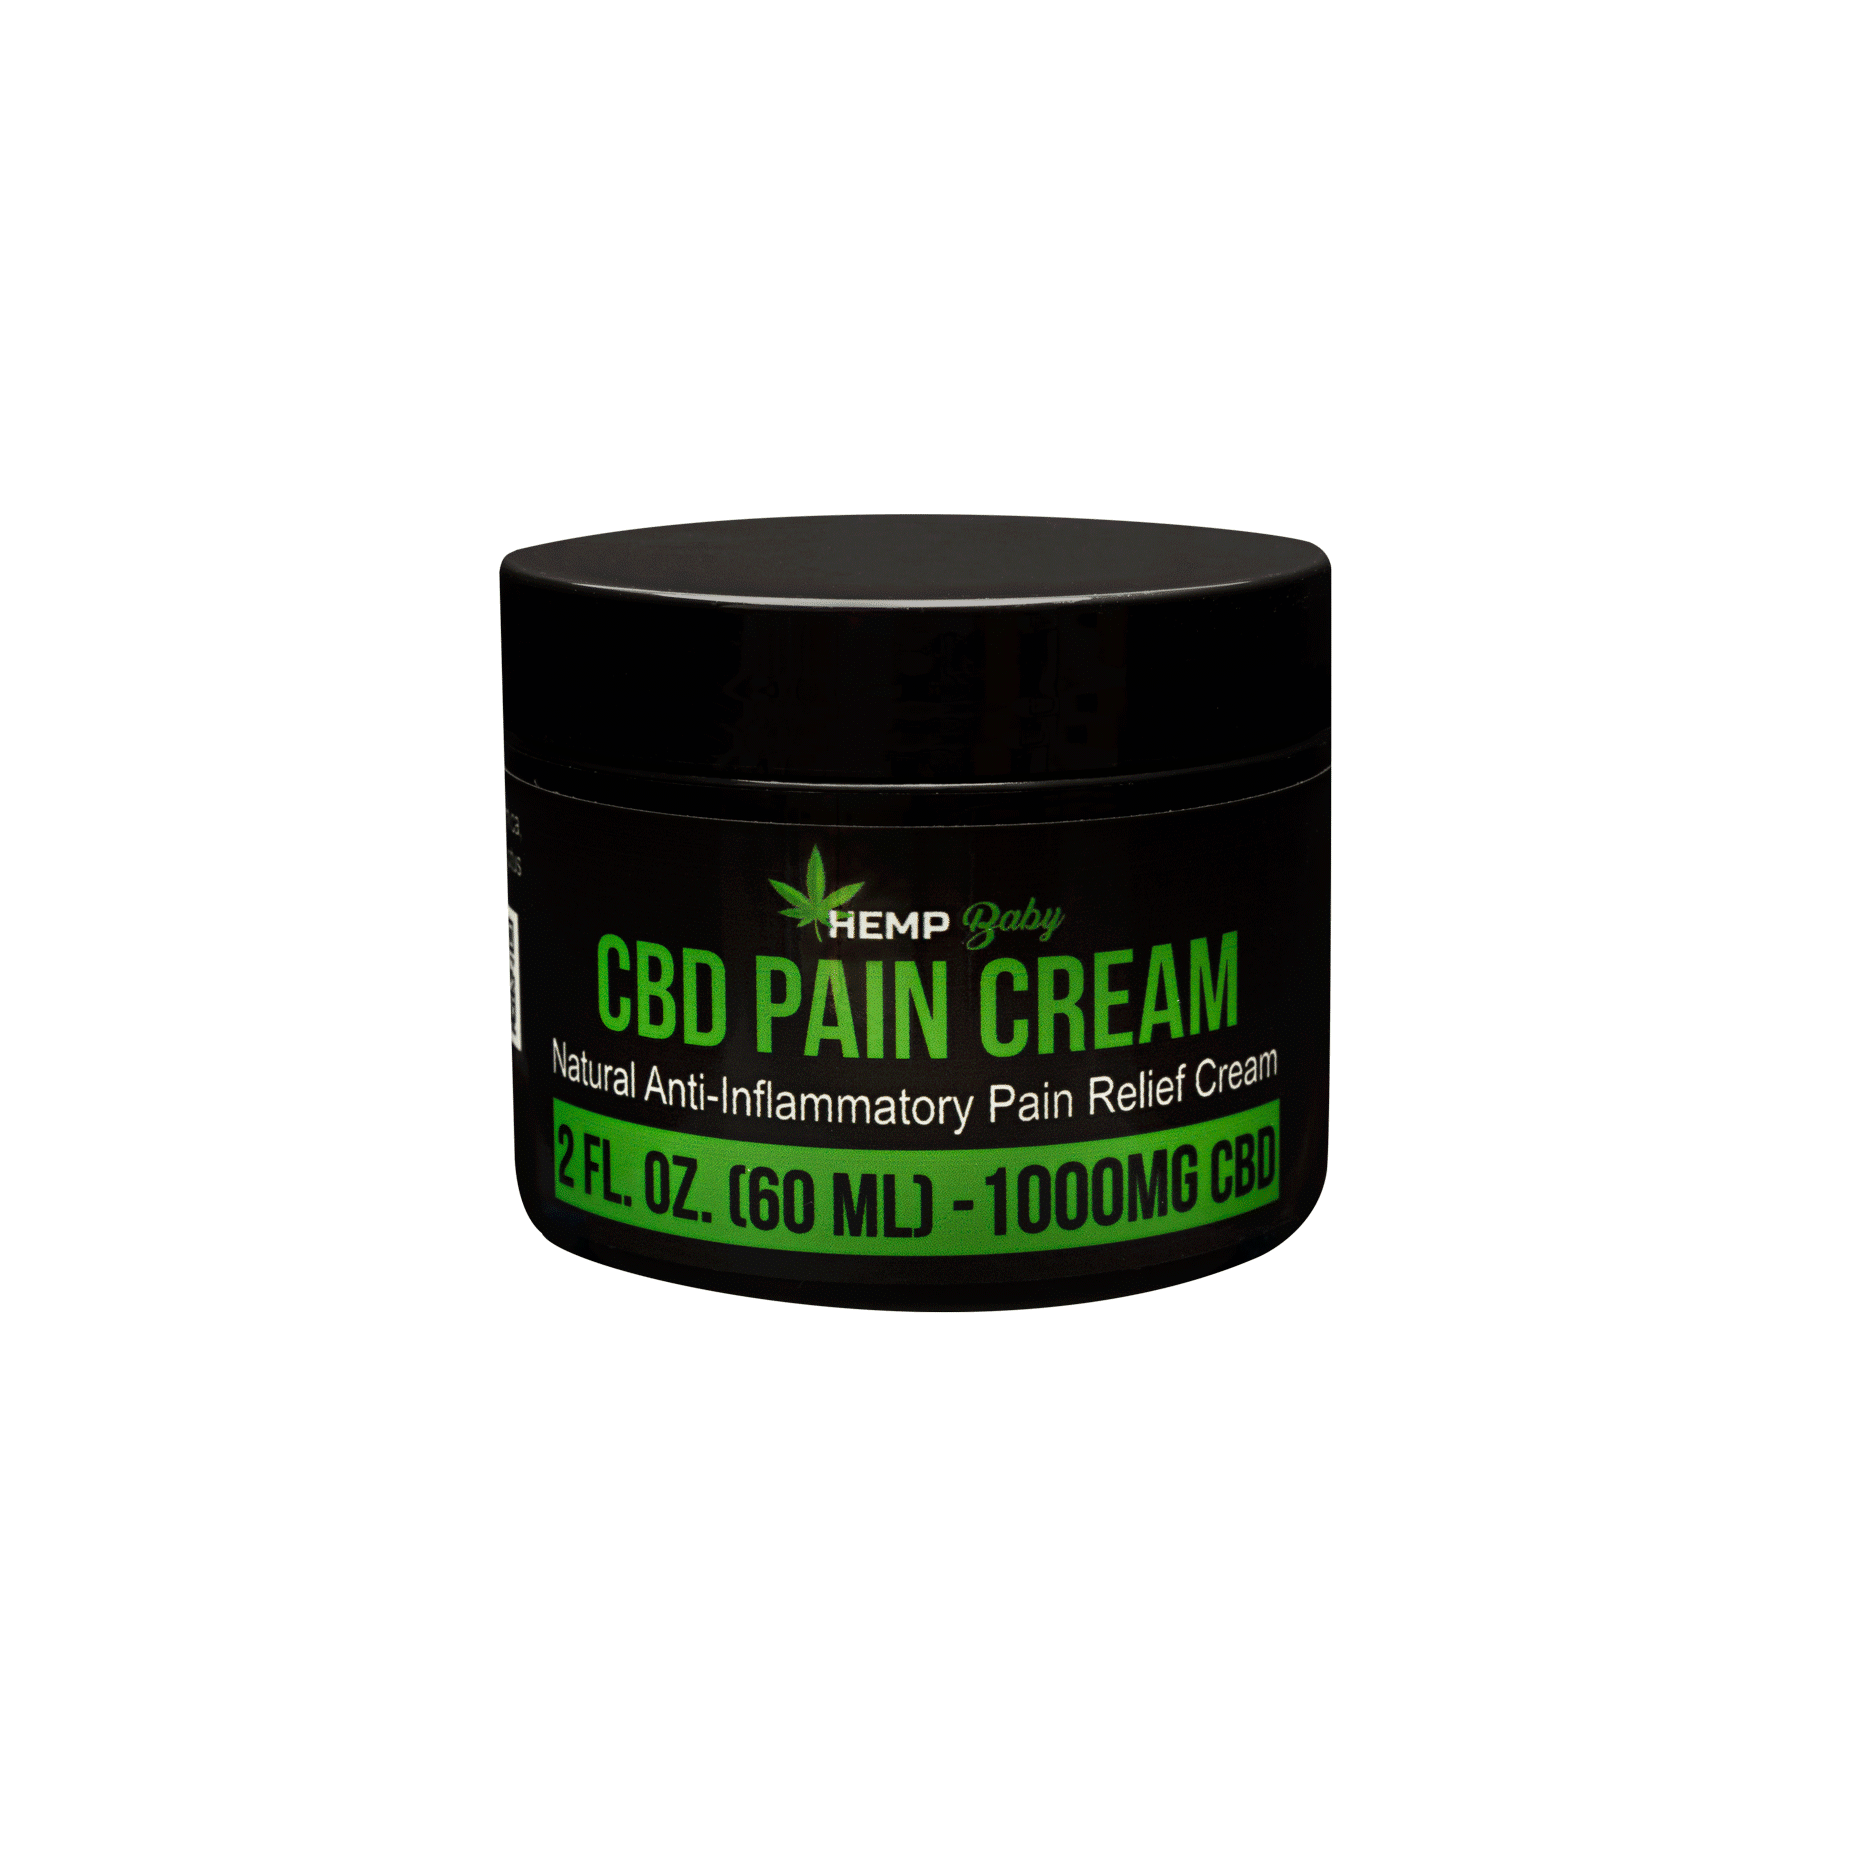 CBD Pain Cream 1000mg - HempBaby